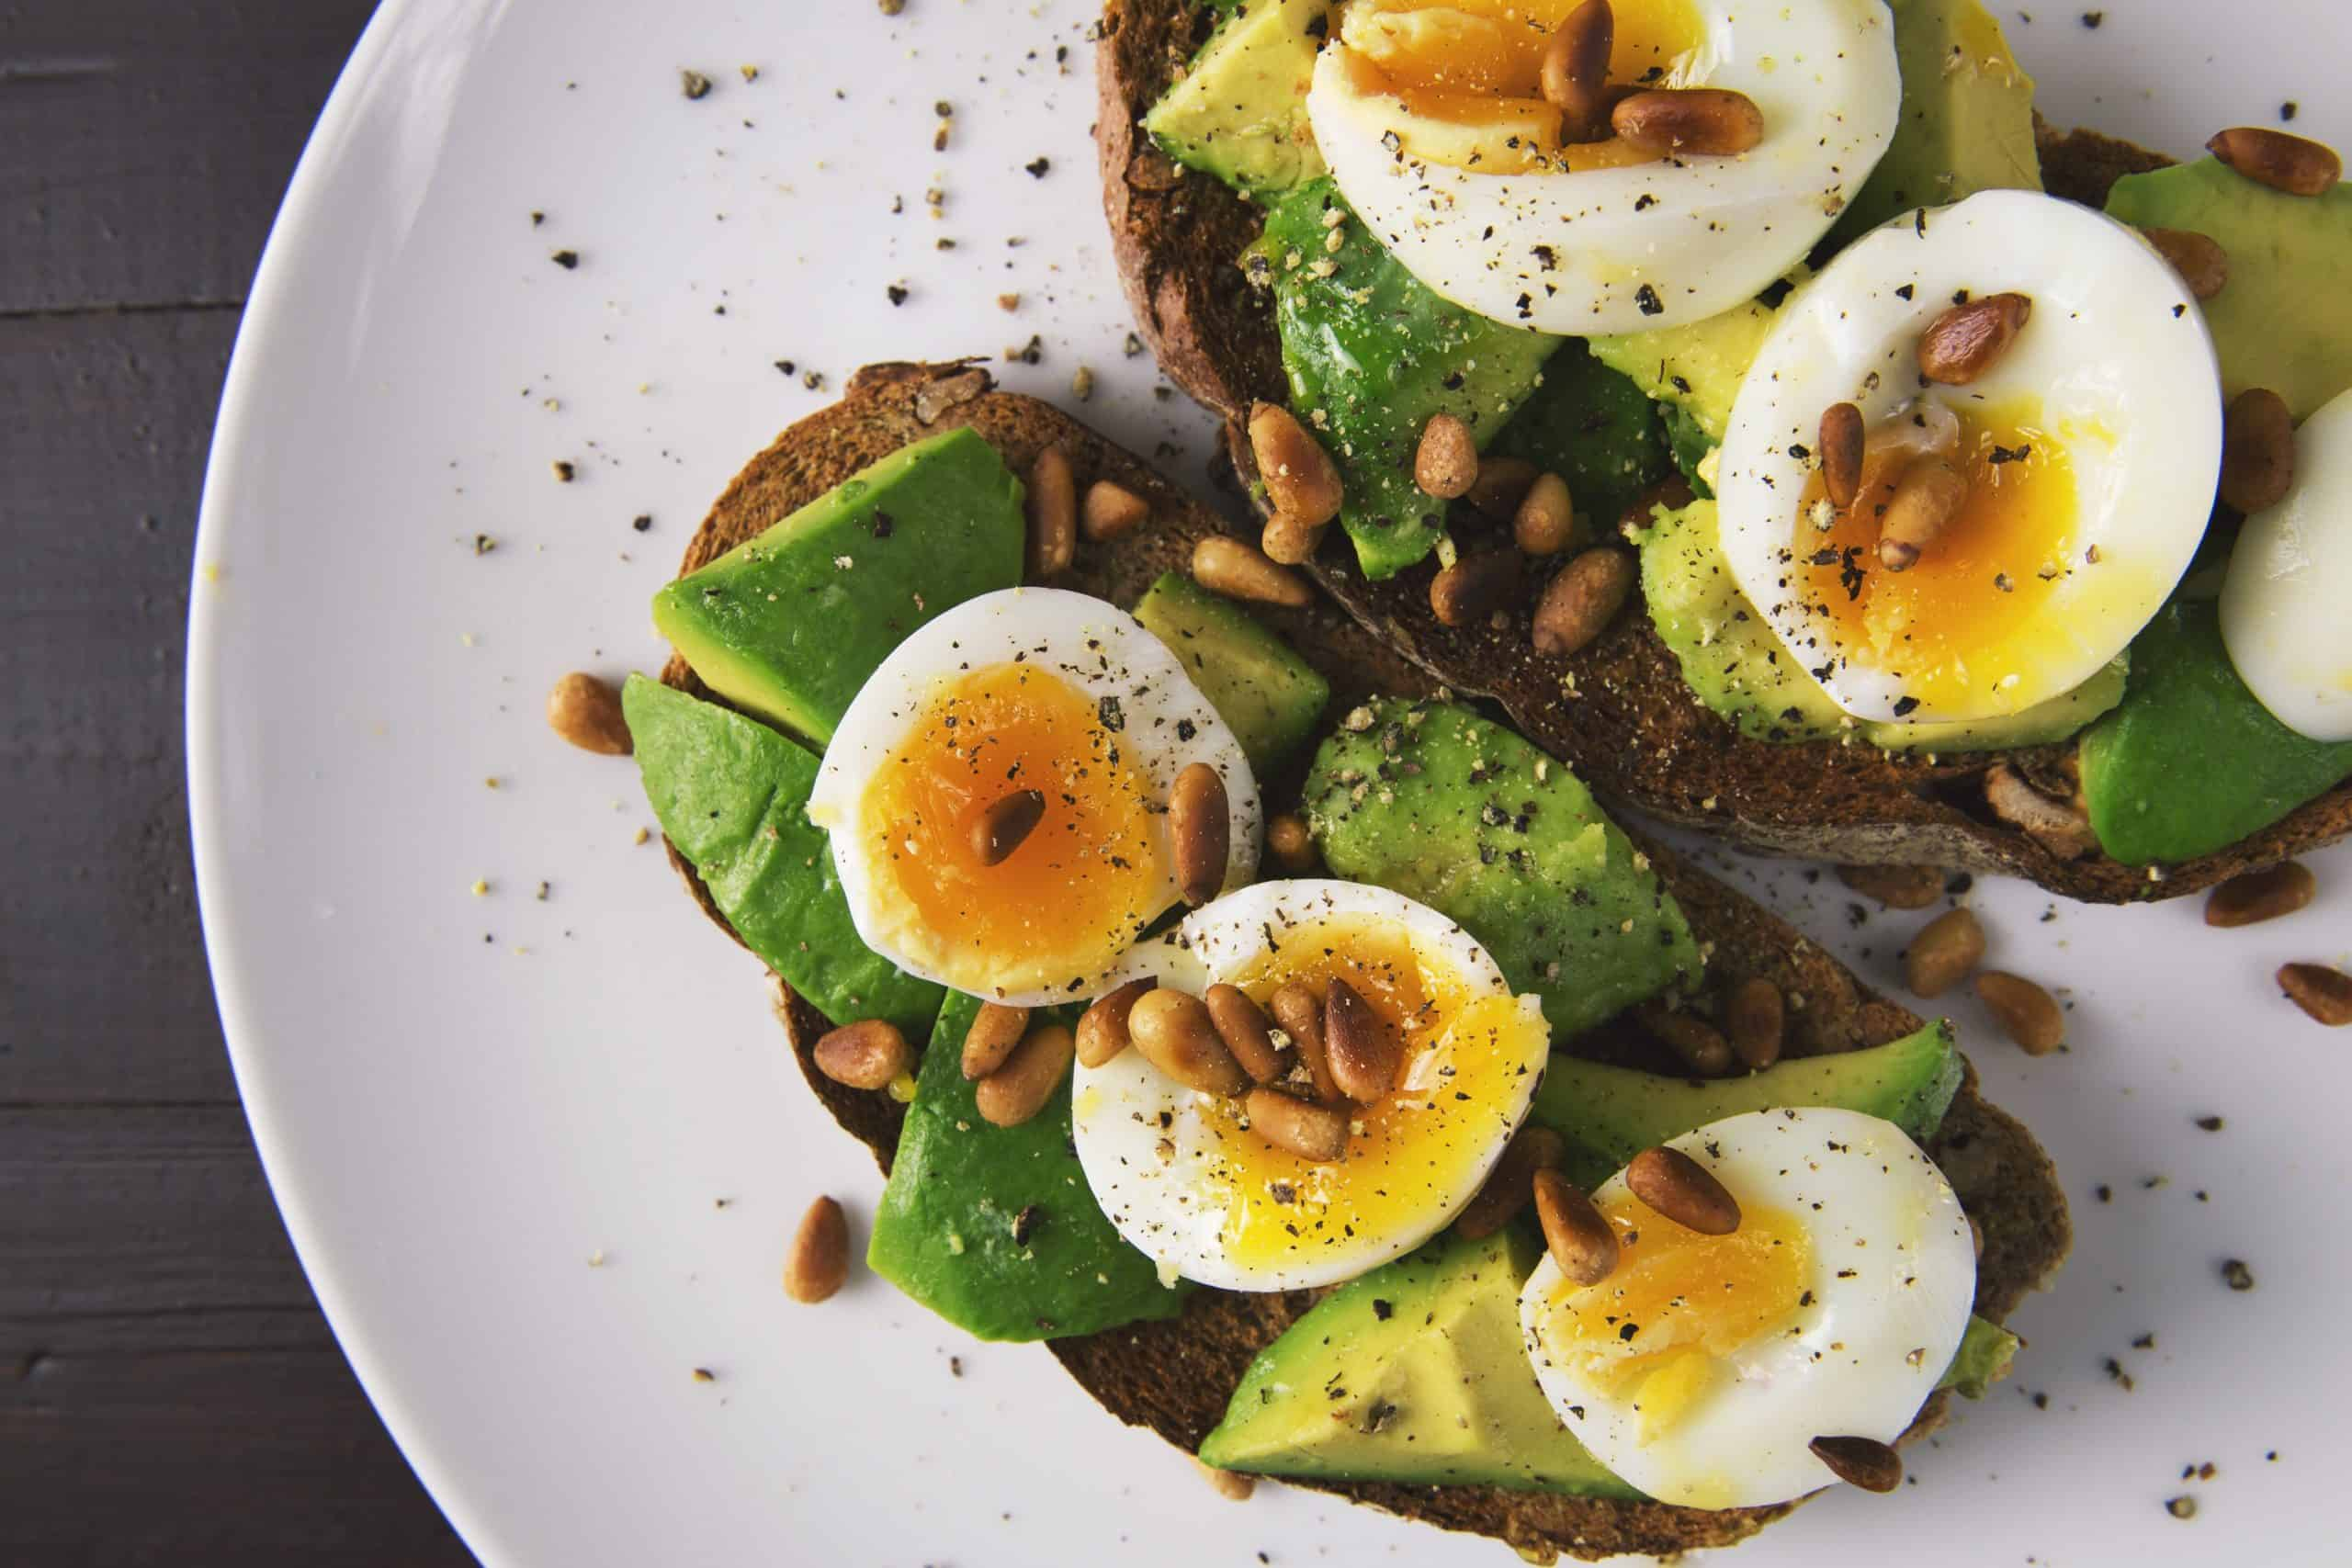 Healthy Egg Breakfast: Reasons To Include Egg